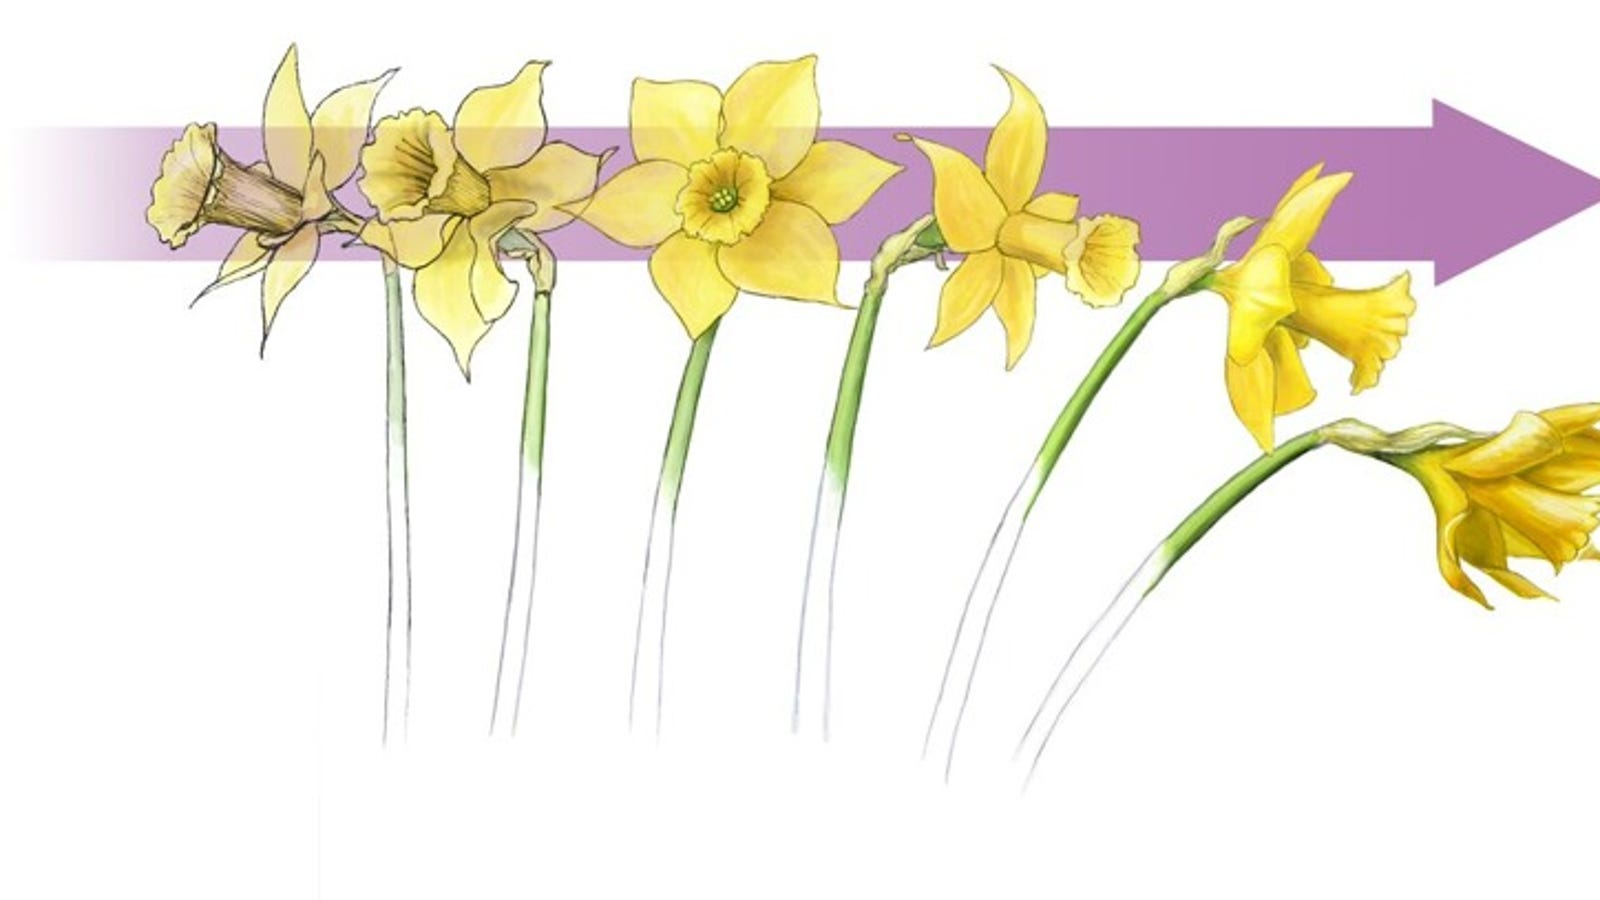 How Flowers Help Us Understand Why Bridges Collapse